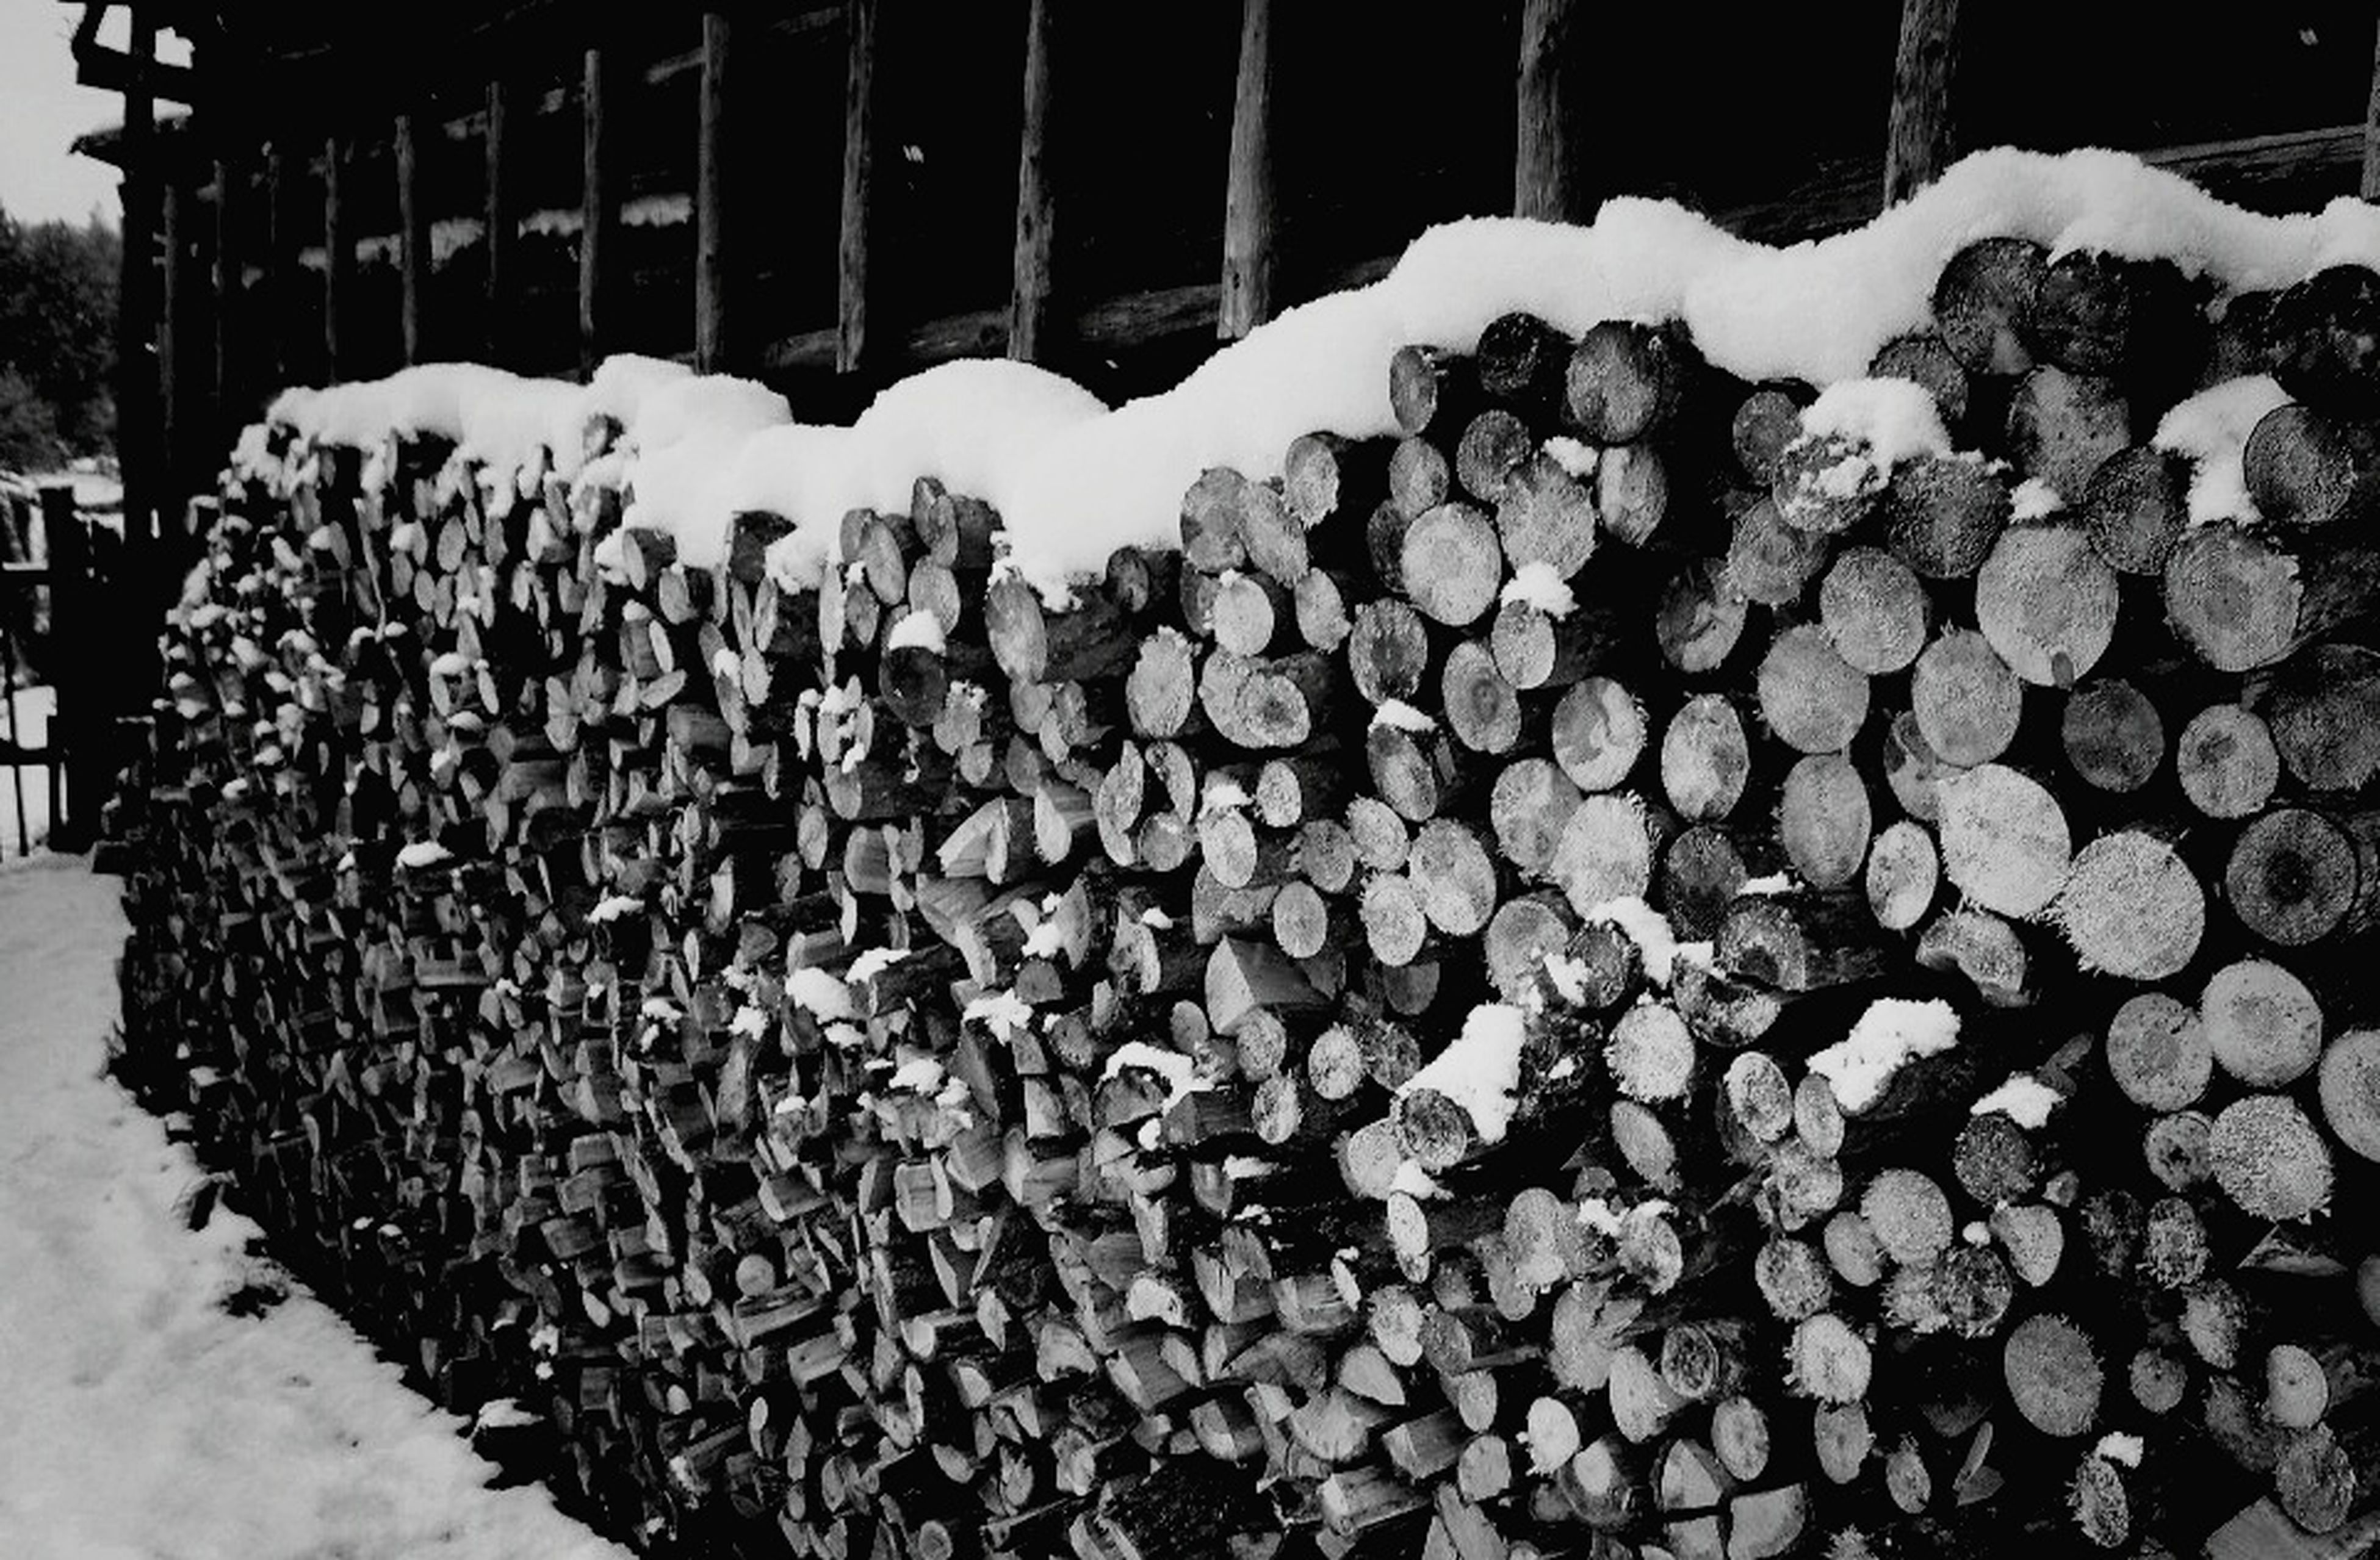 snow, cold temperature, winter, stack, large group of objects, abundance, field, outdoors, season, nature, wood - material, fence, firewood, built structure, day, covering, no people, stone - object, log, weather